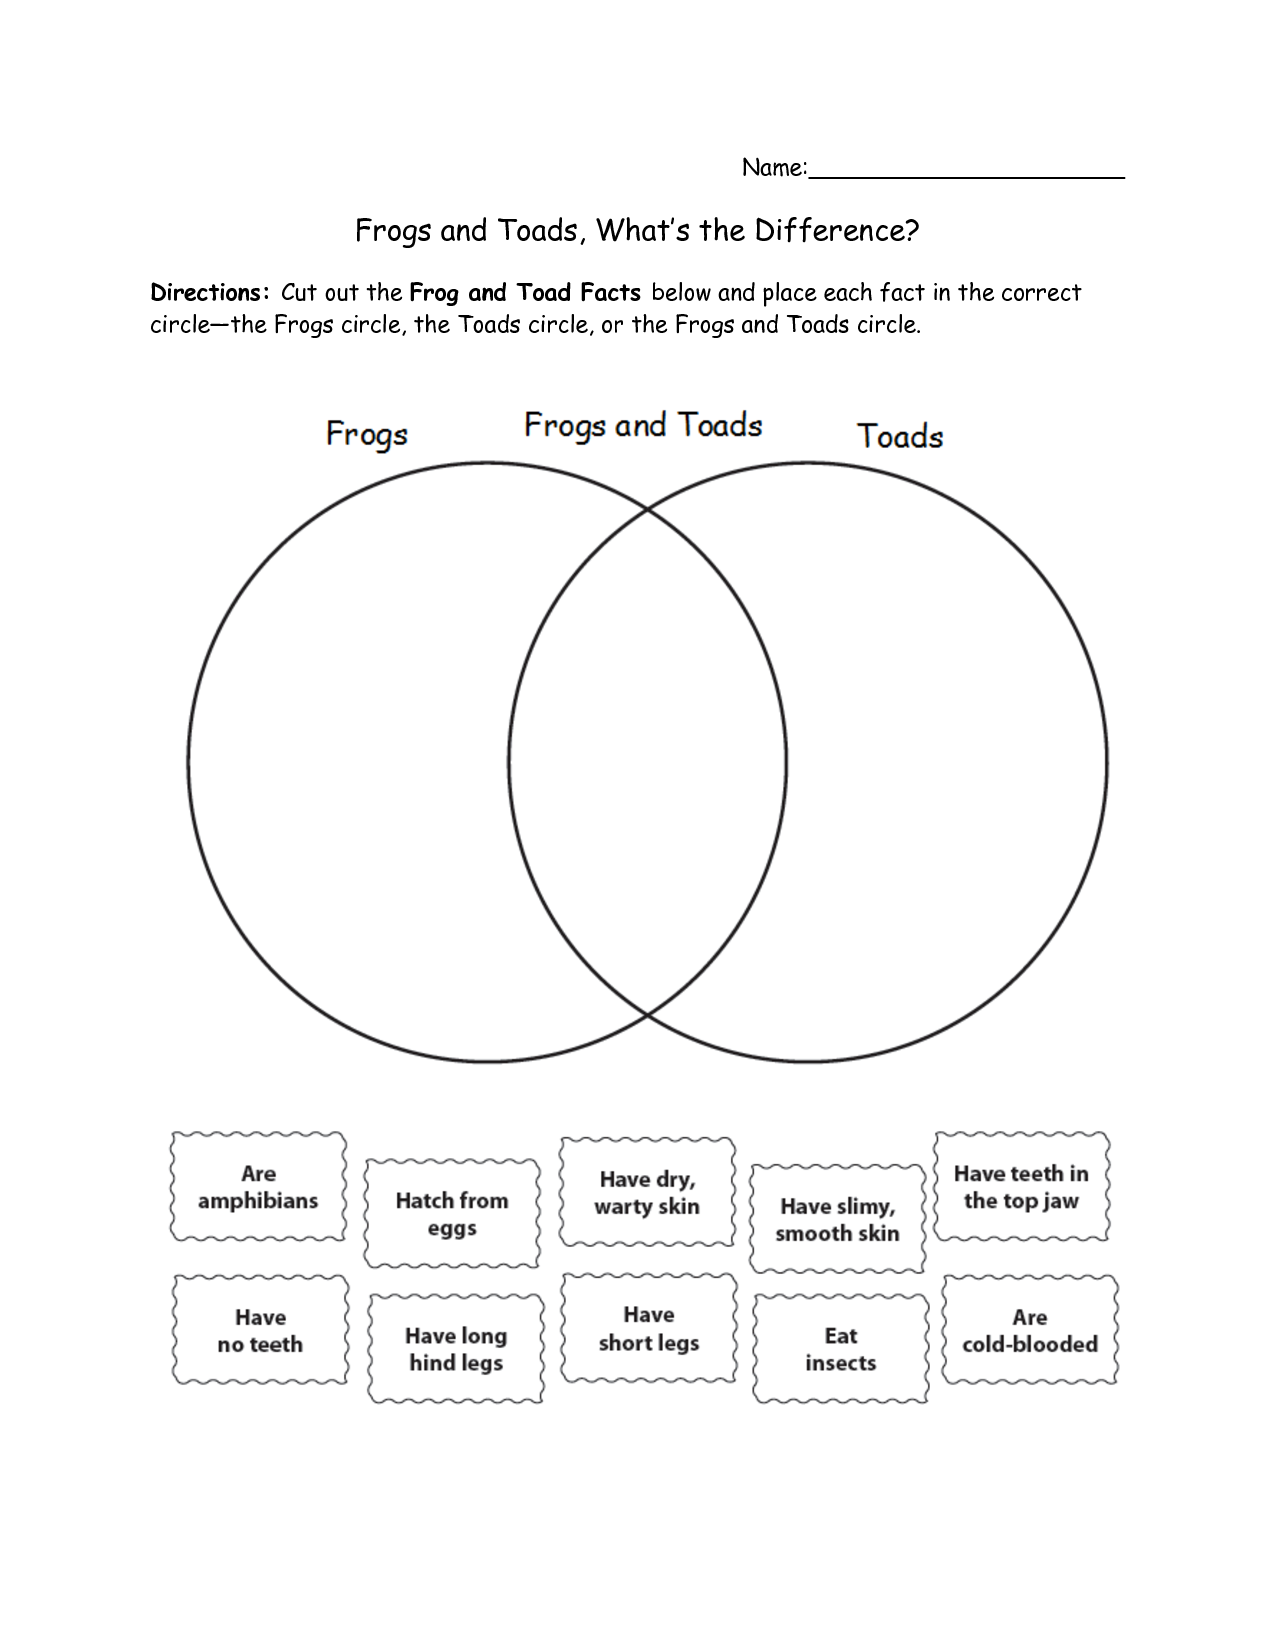 Scope of work template preschool pinterest toad and frogs frogs and toads whats the difference pooptronica